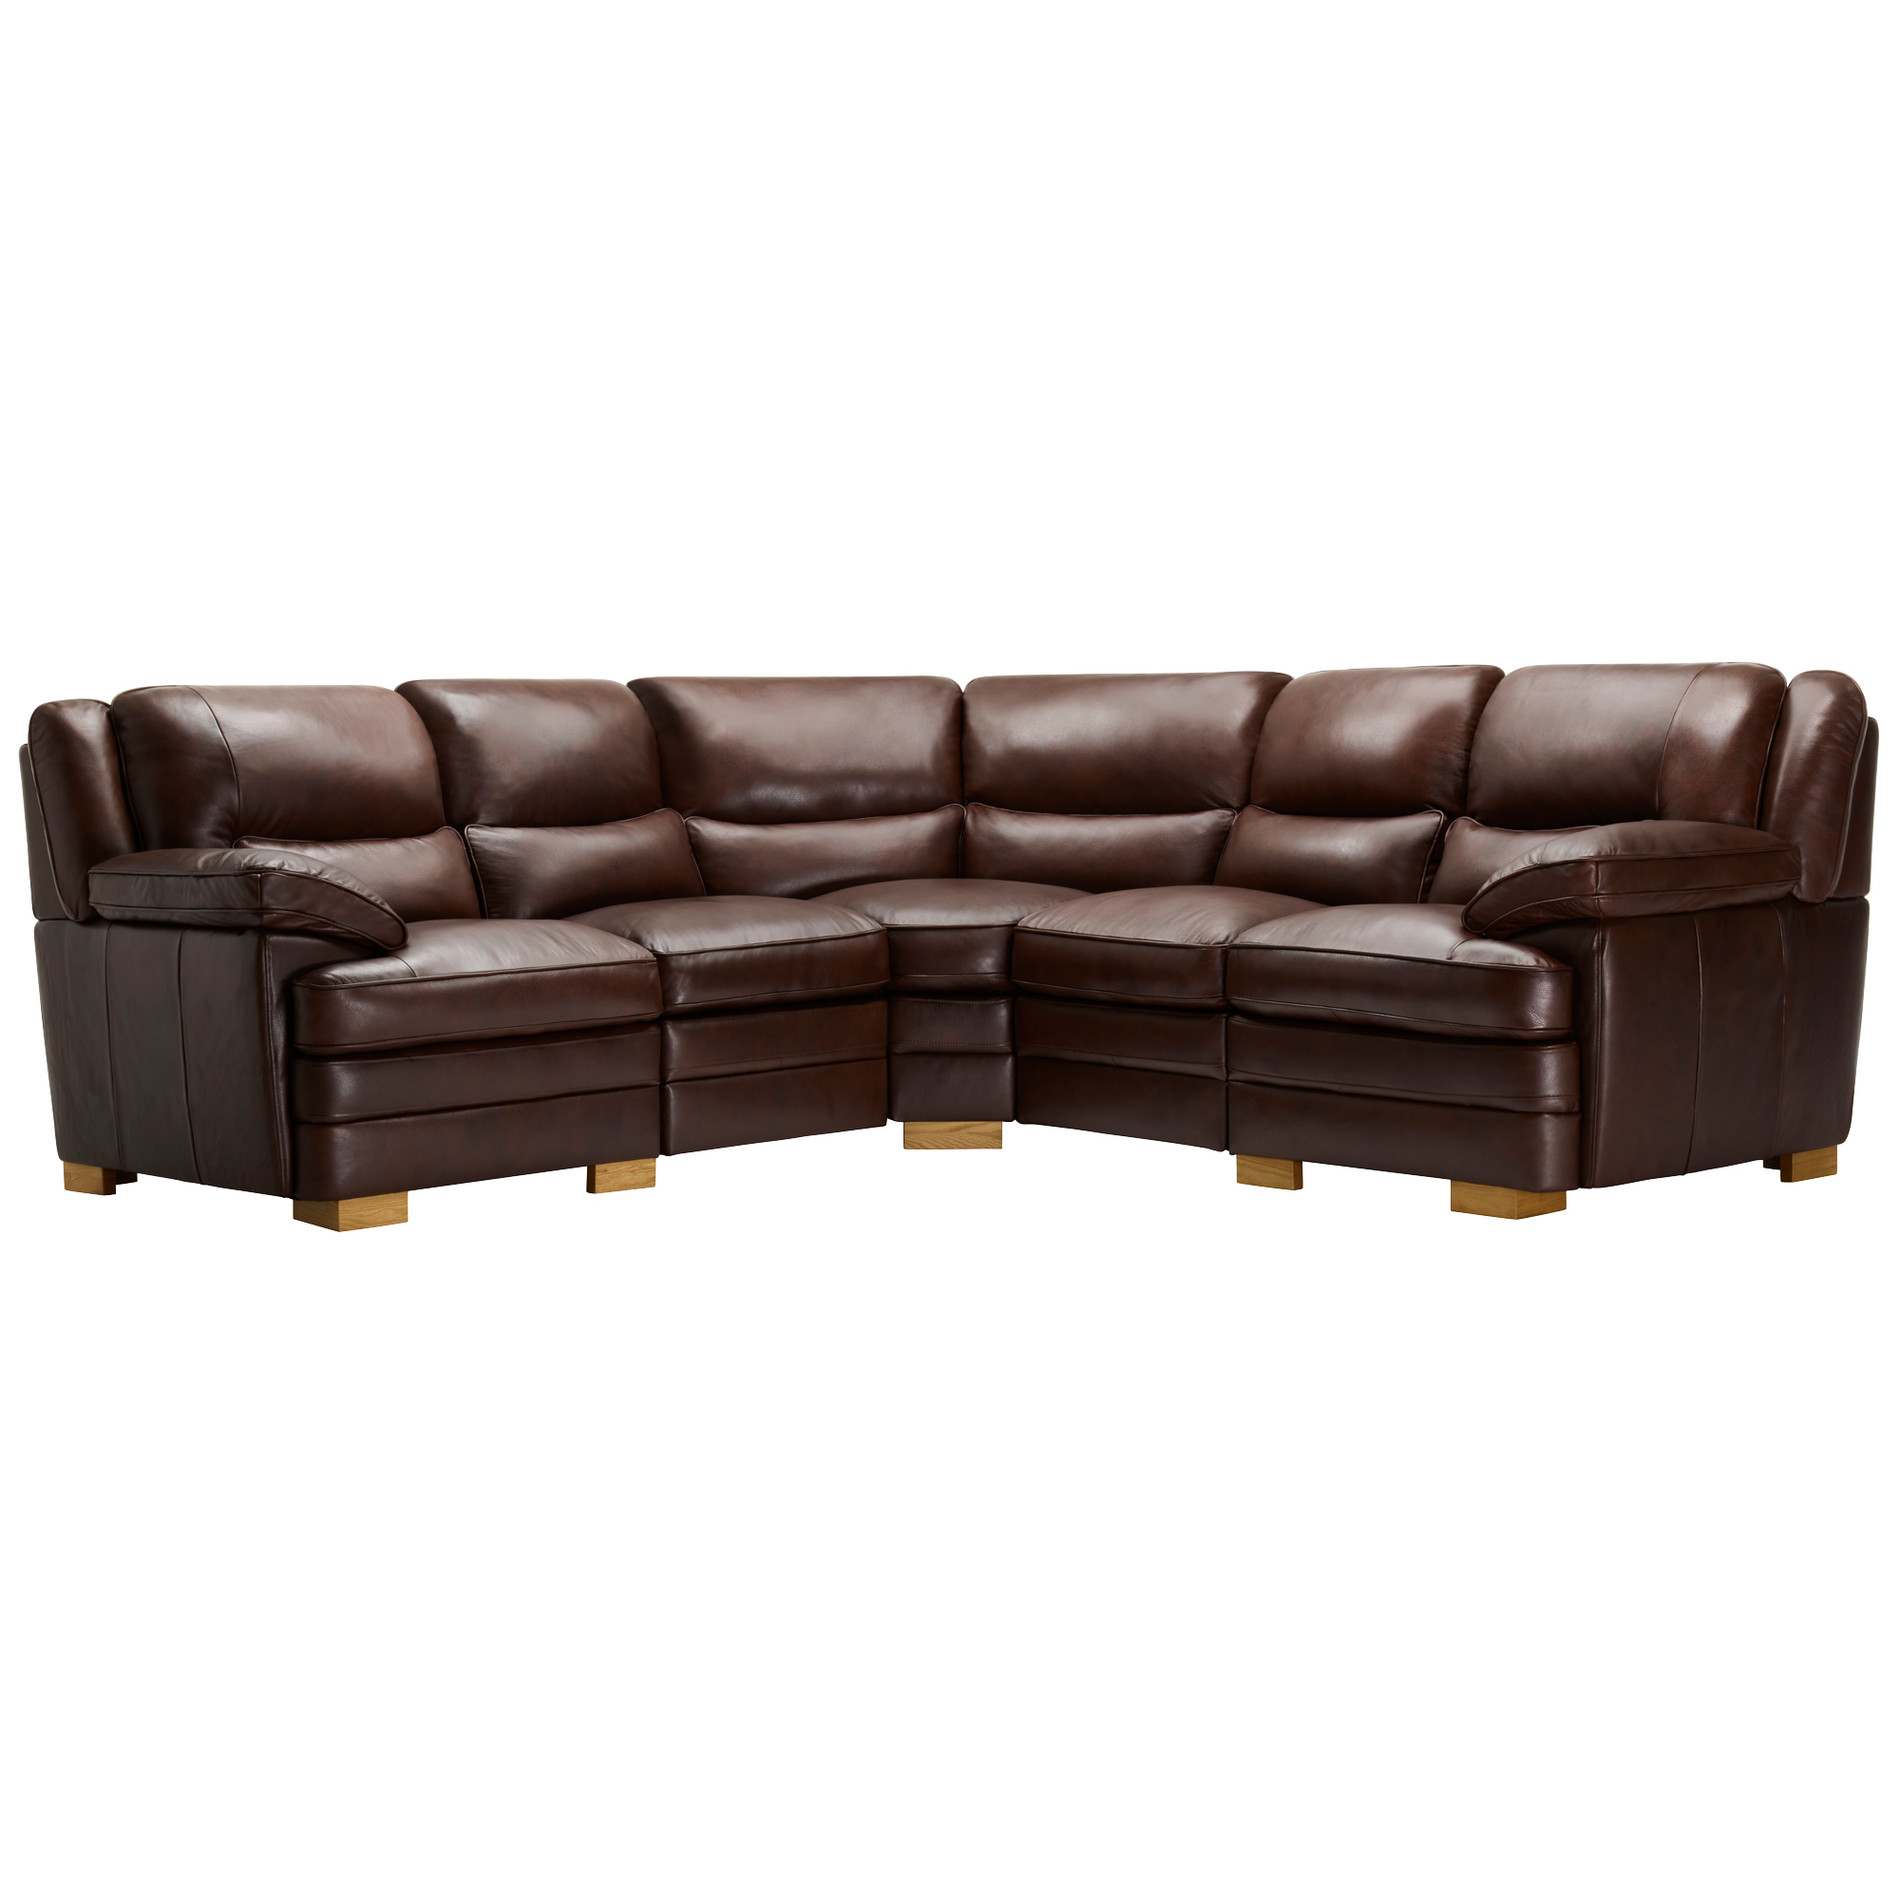 modena 2 seater reclining leather sofa mainstays fulton bed multiple colors modular group 3 in two tone brown oak furniture land